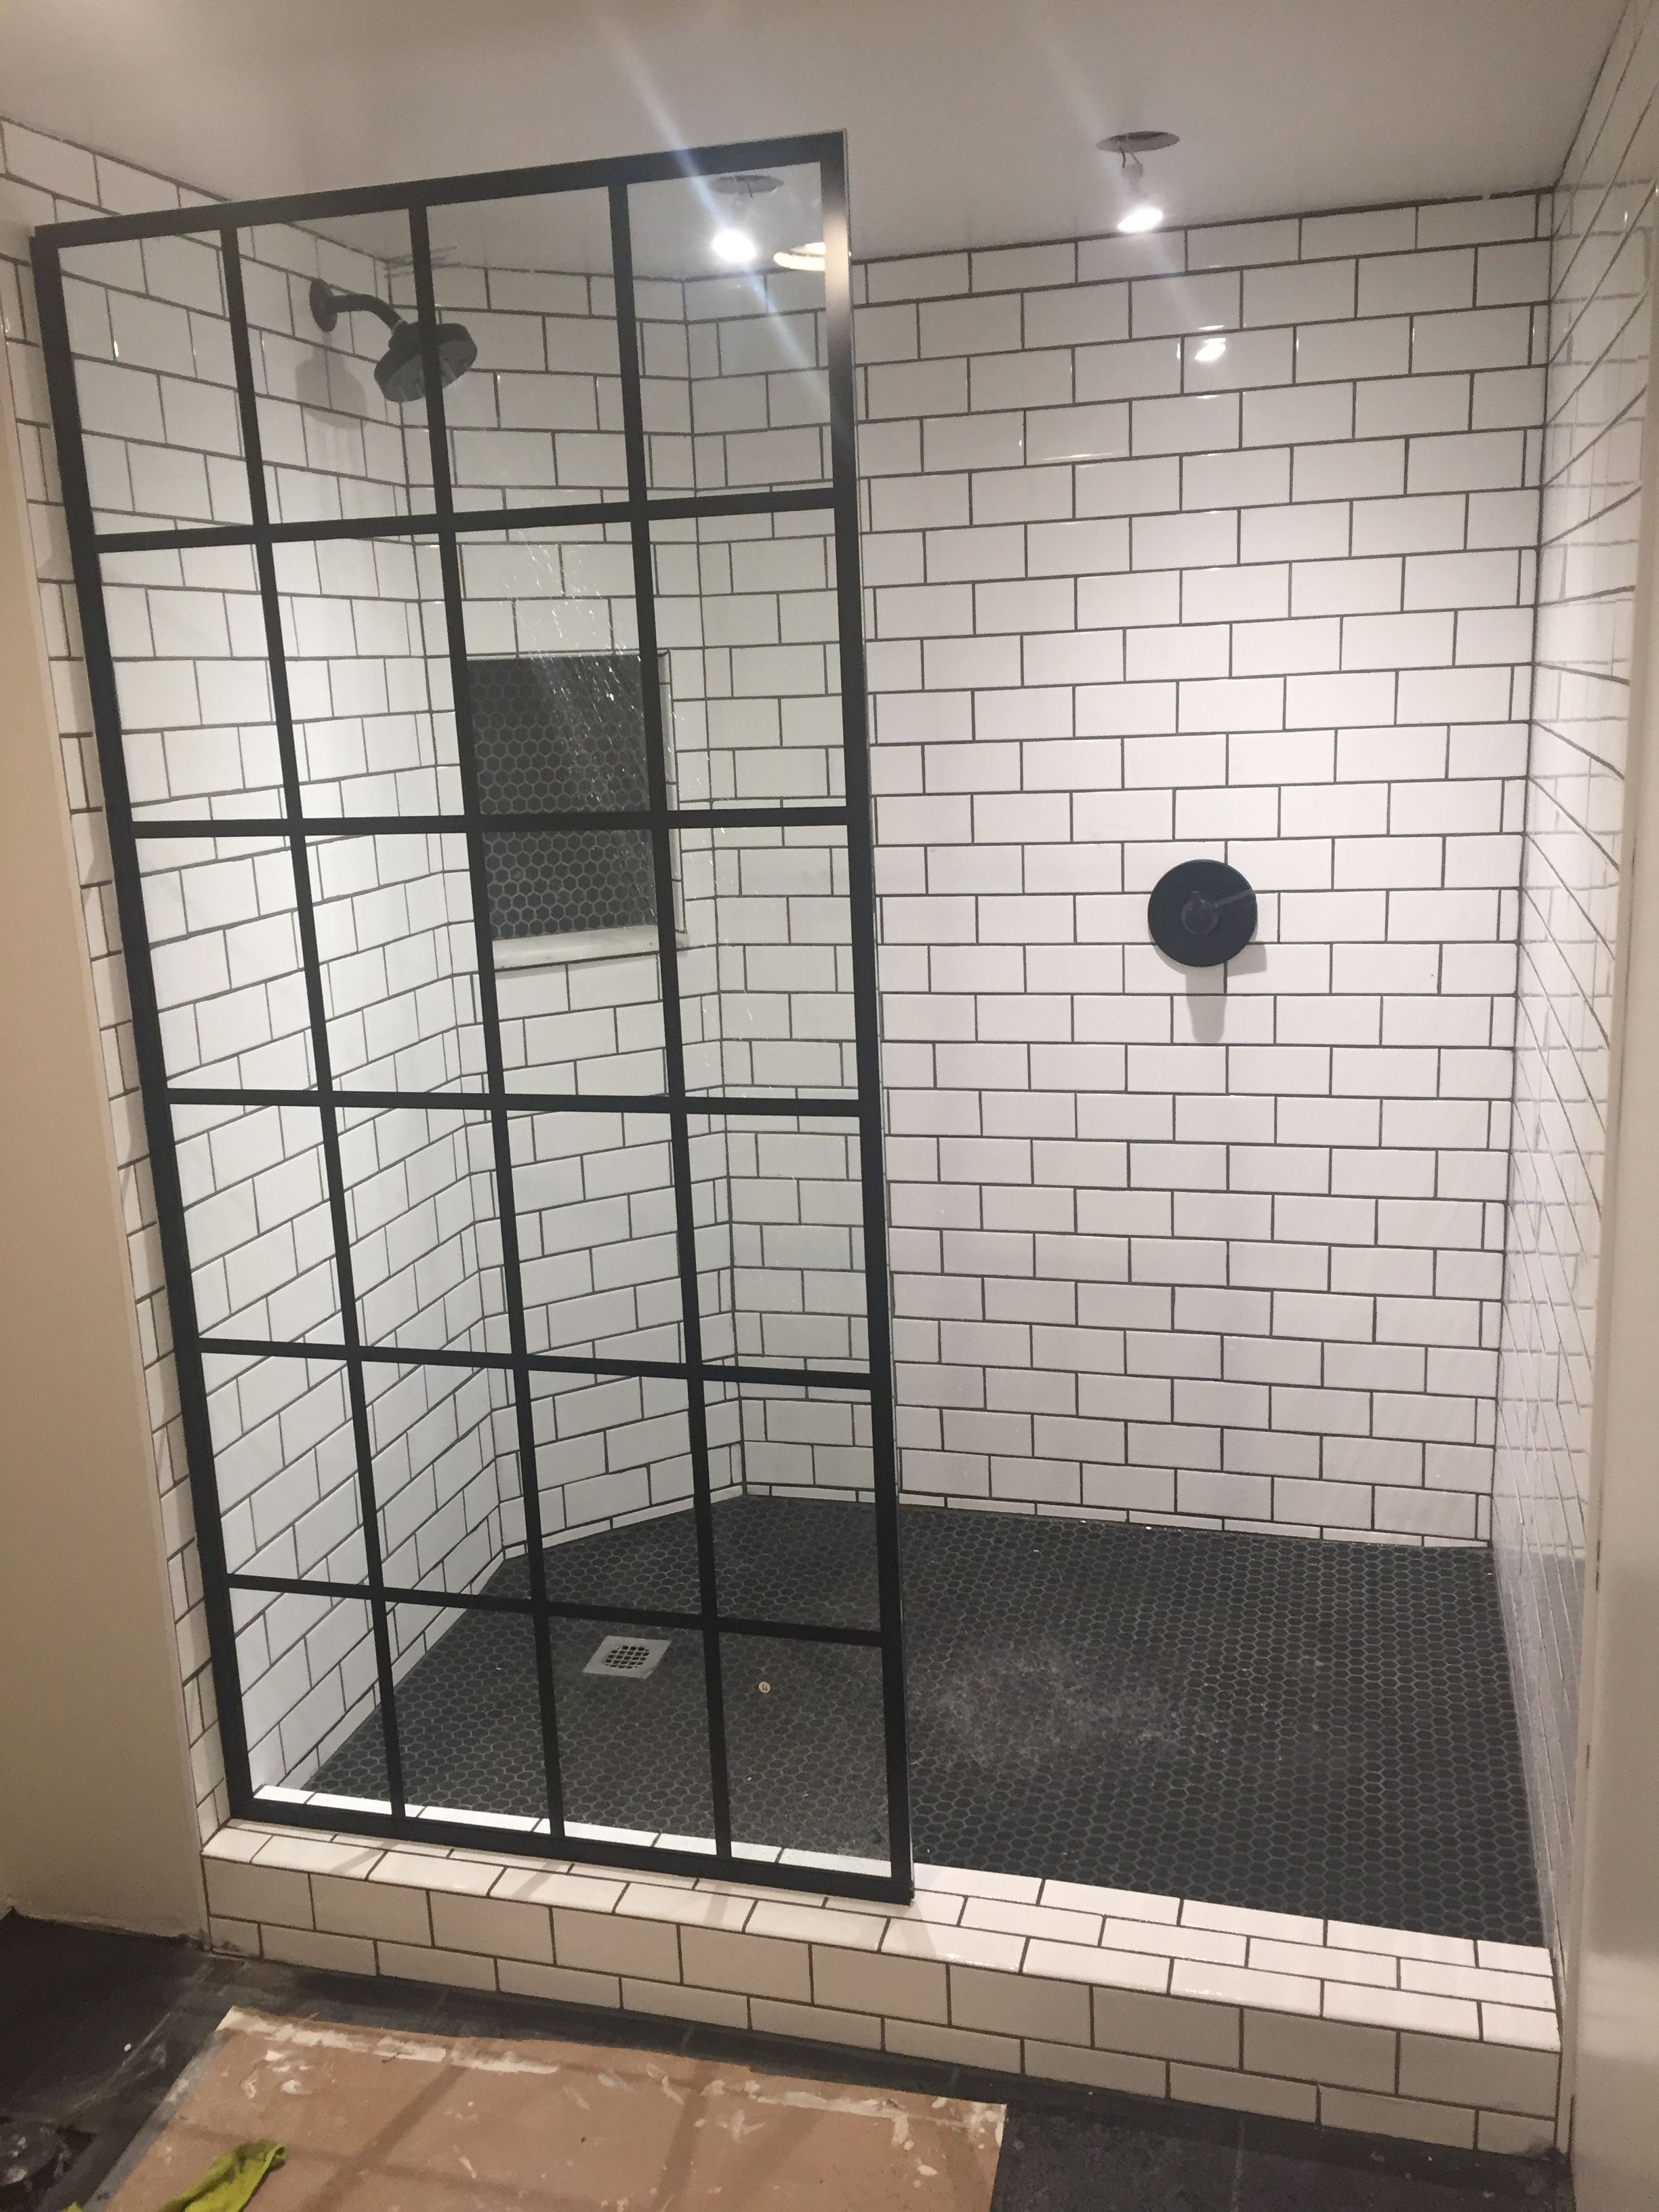 Diy Shower Pan Subway Tile Hex Tile Renovation Diy Bathroom